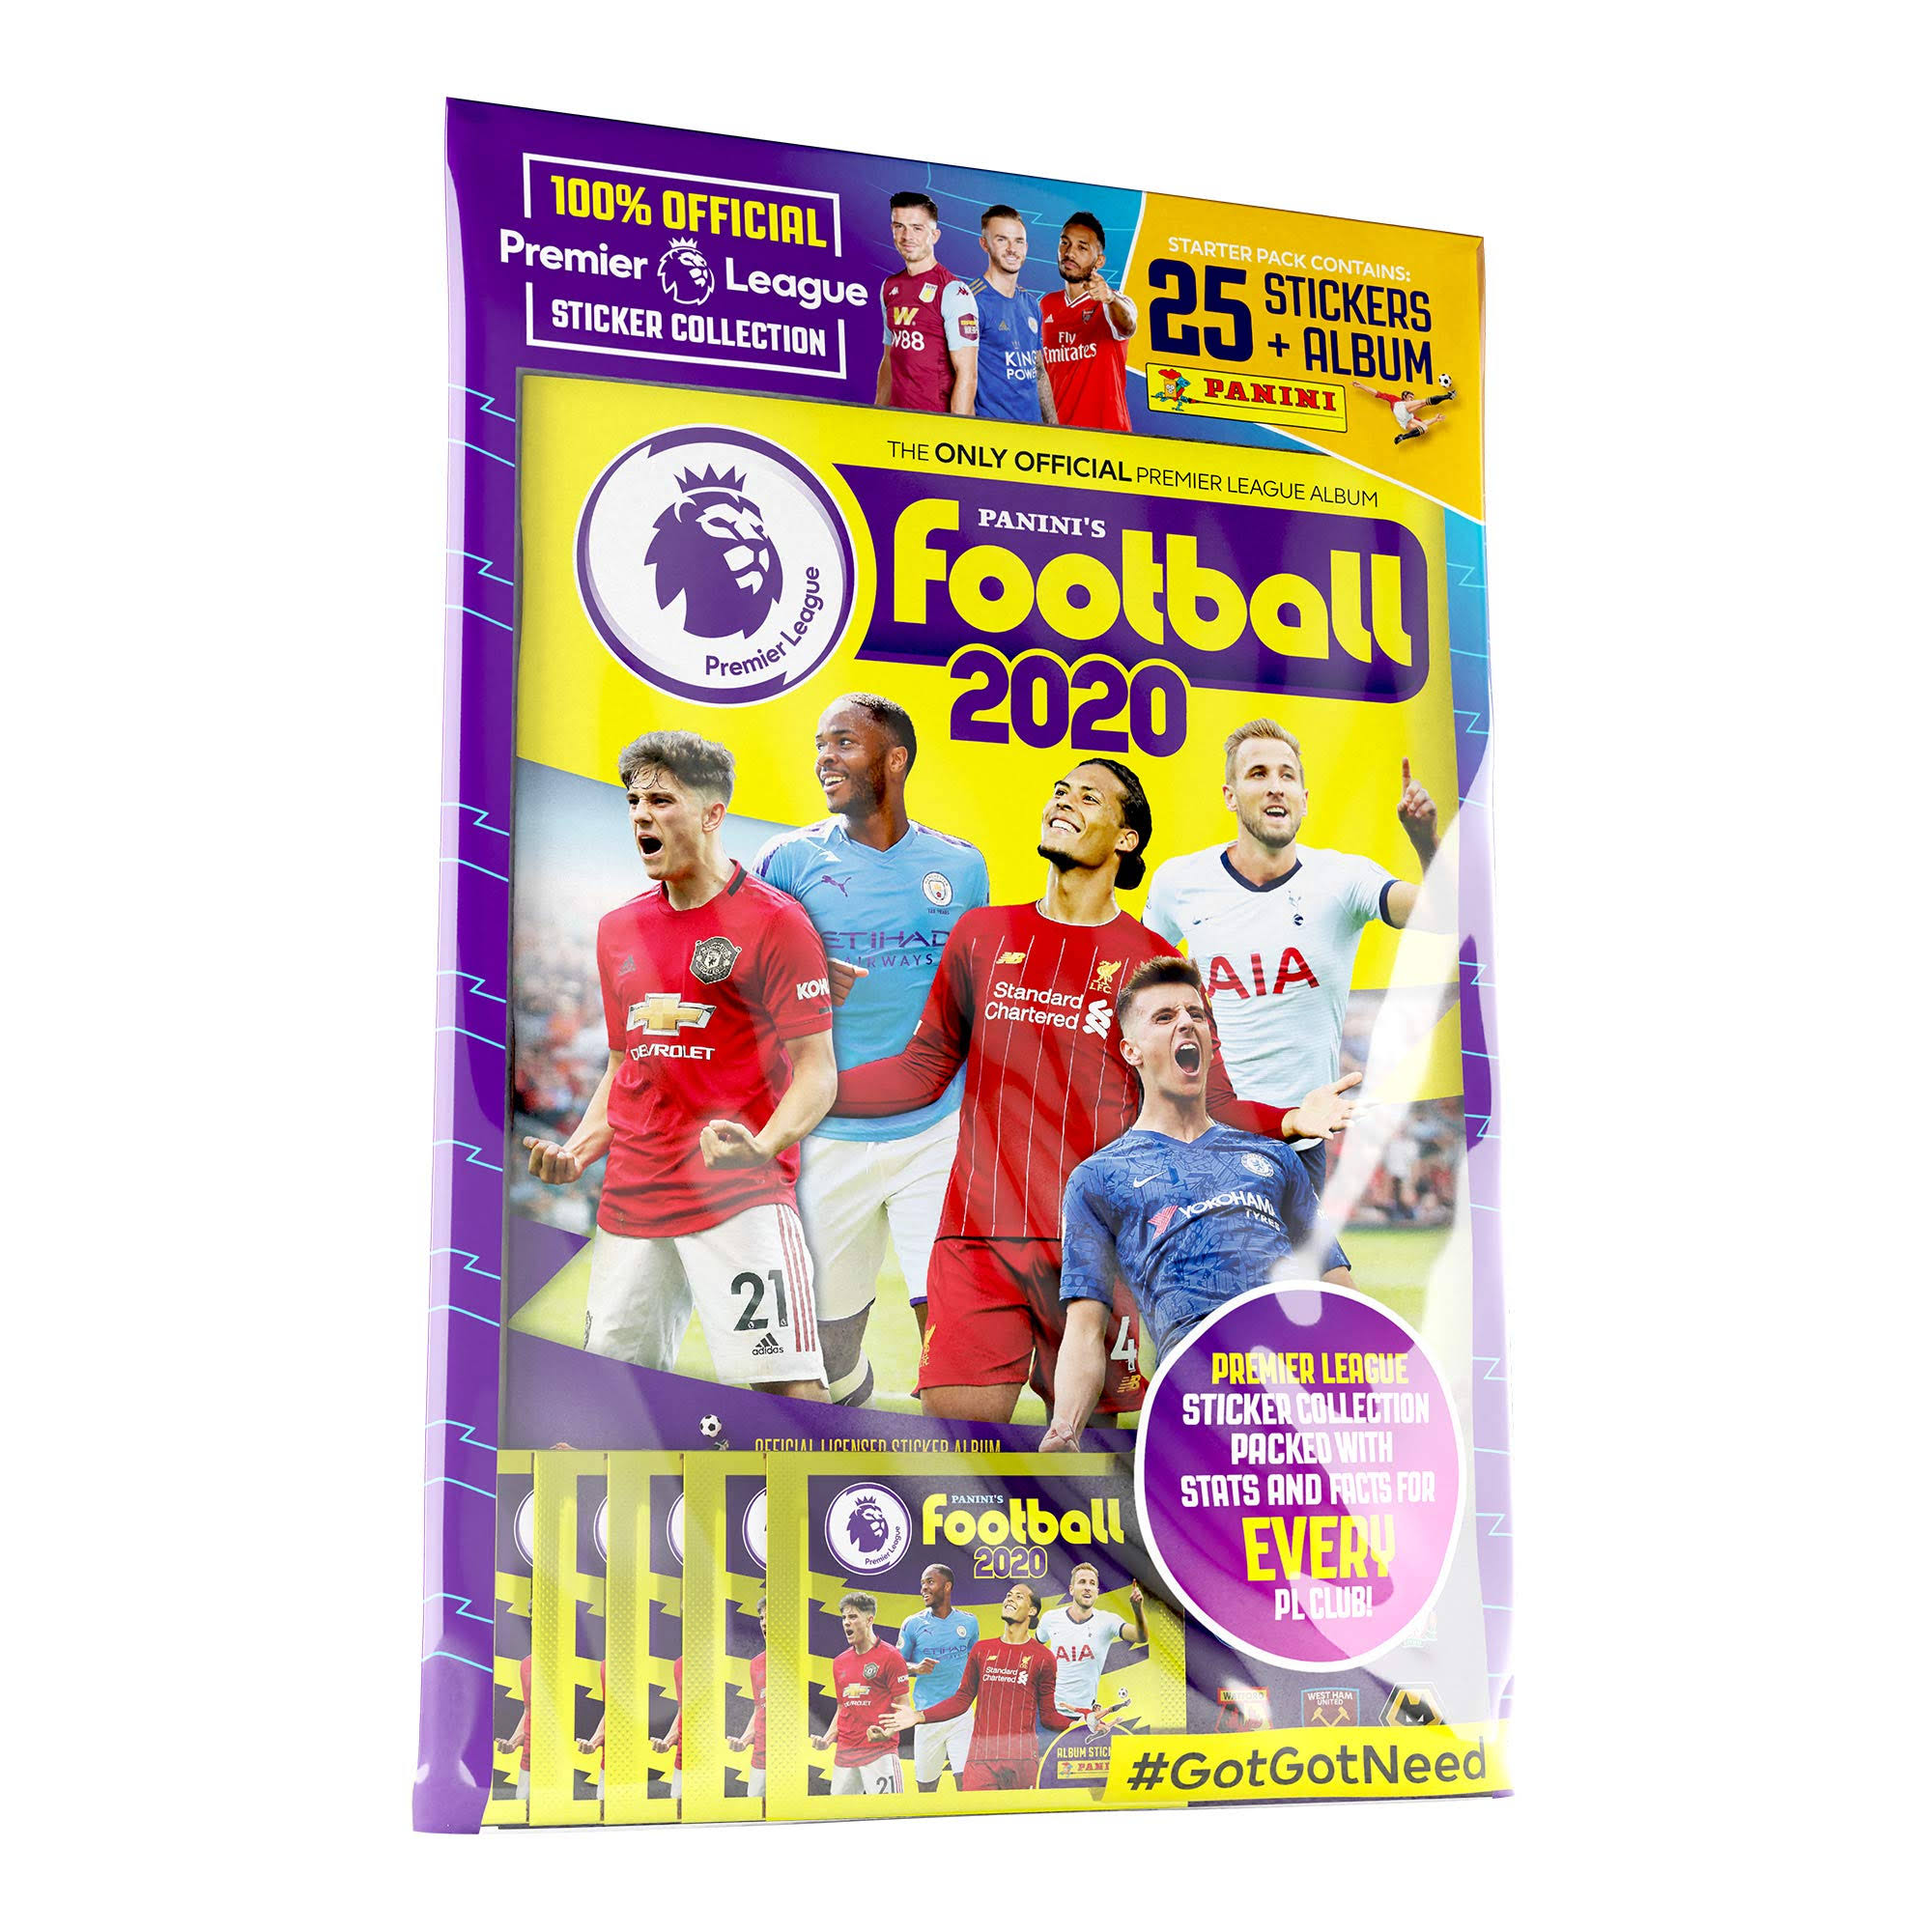 Panini's Football 2020 – The Official Premier League Sticker Collection Starter Pack